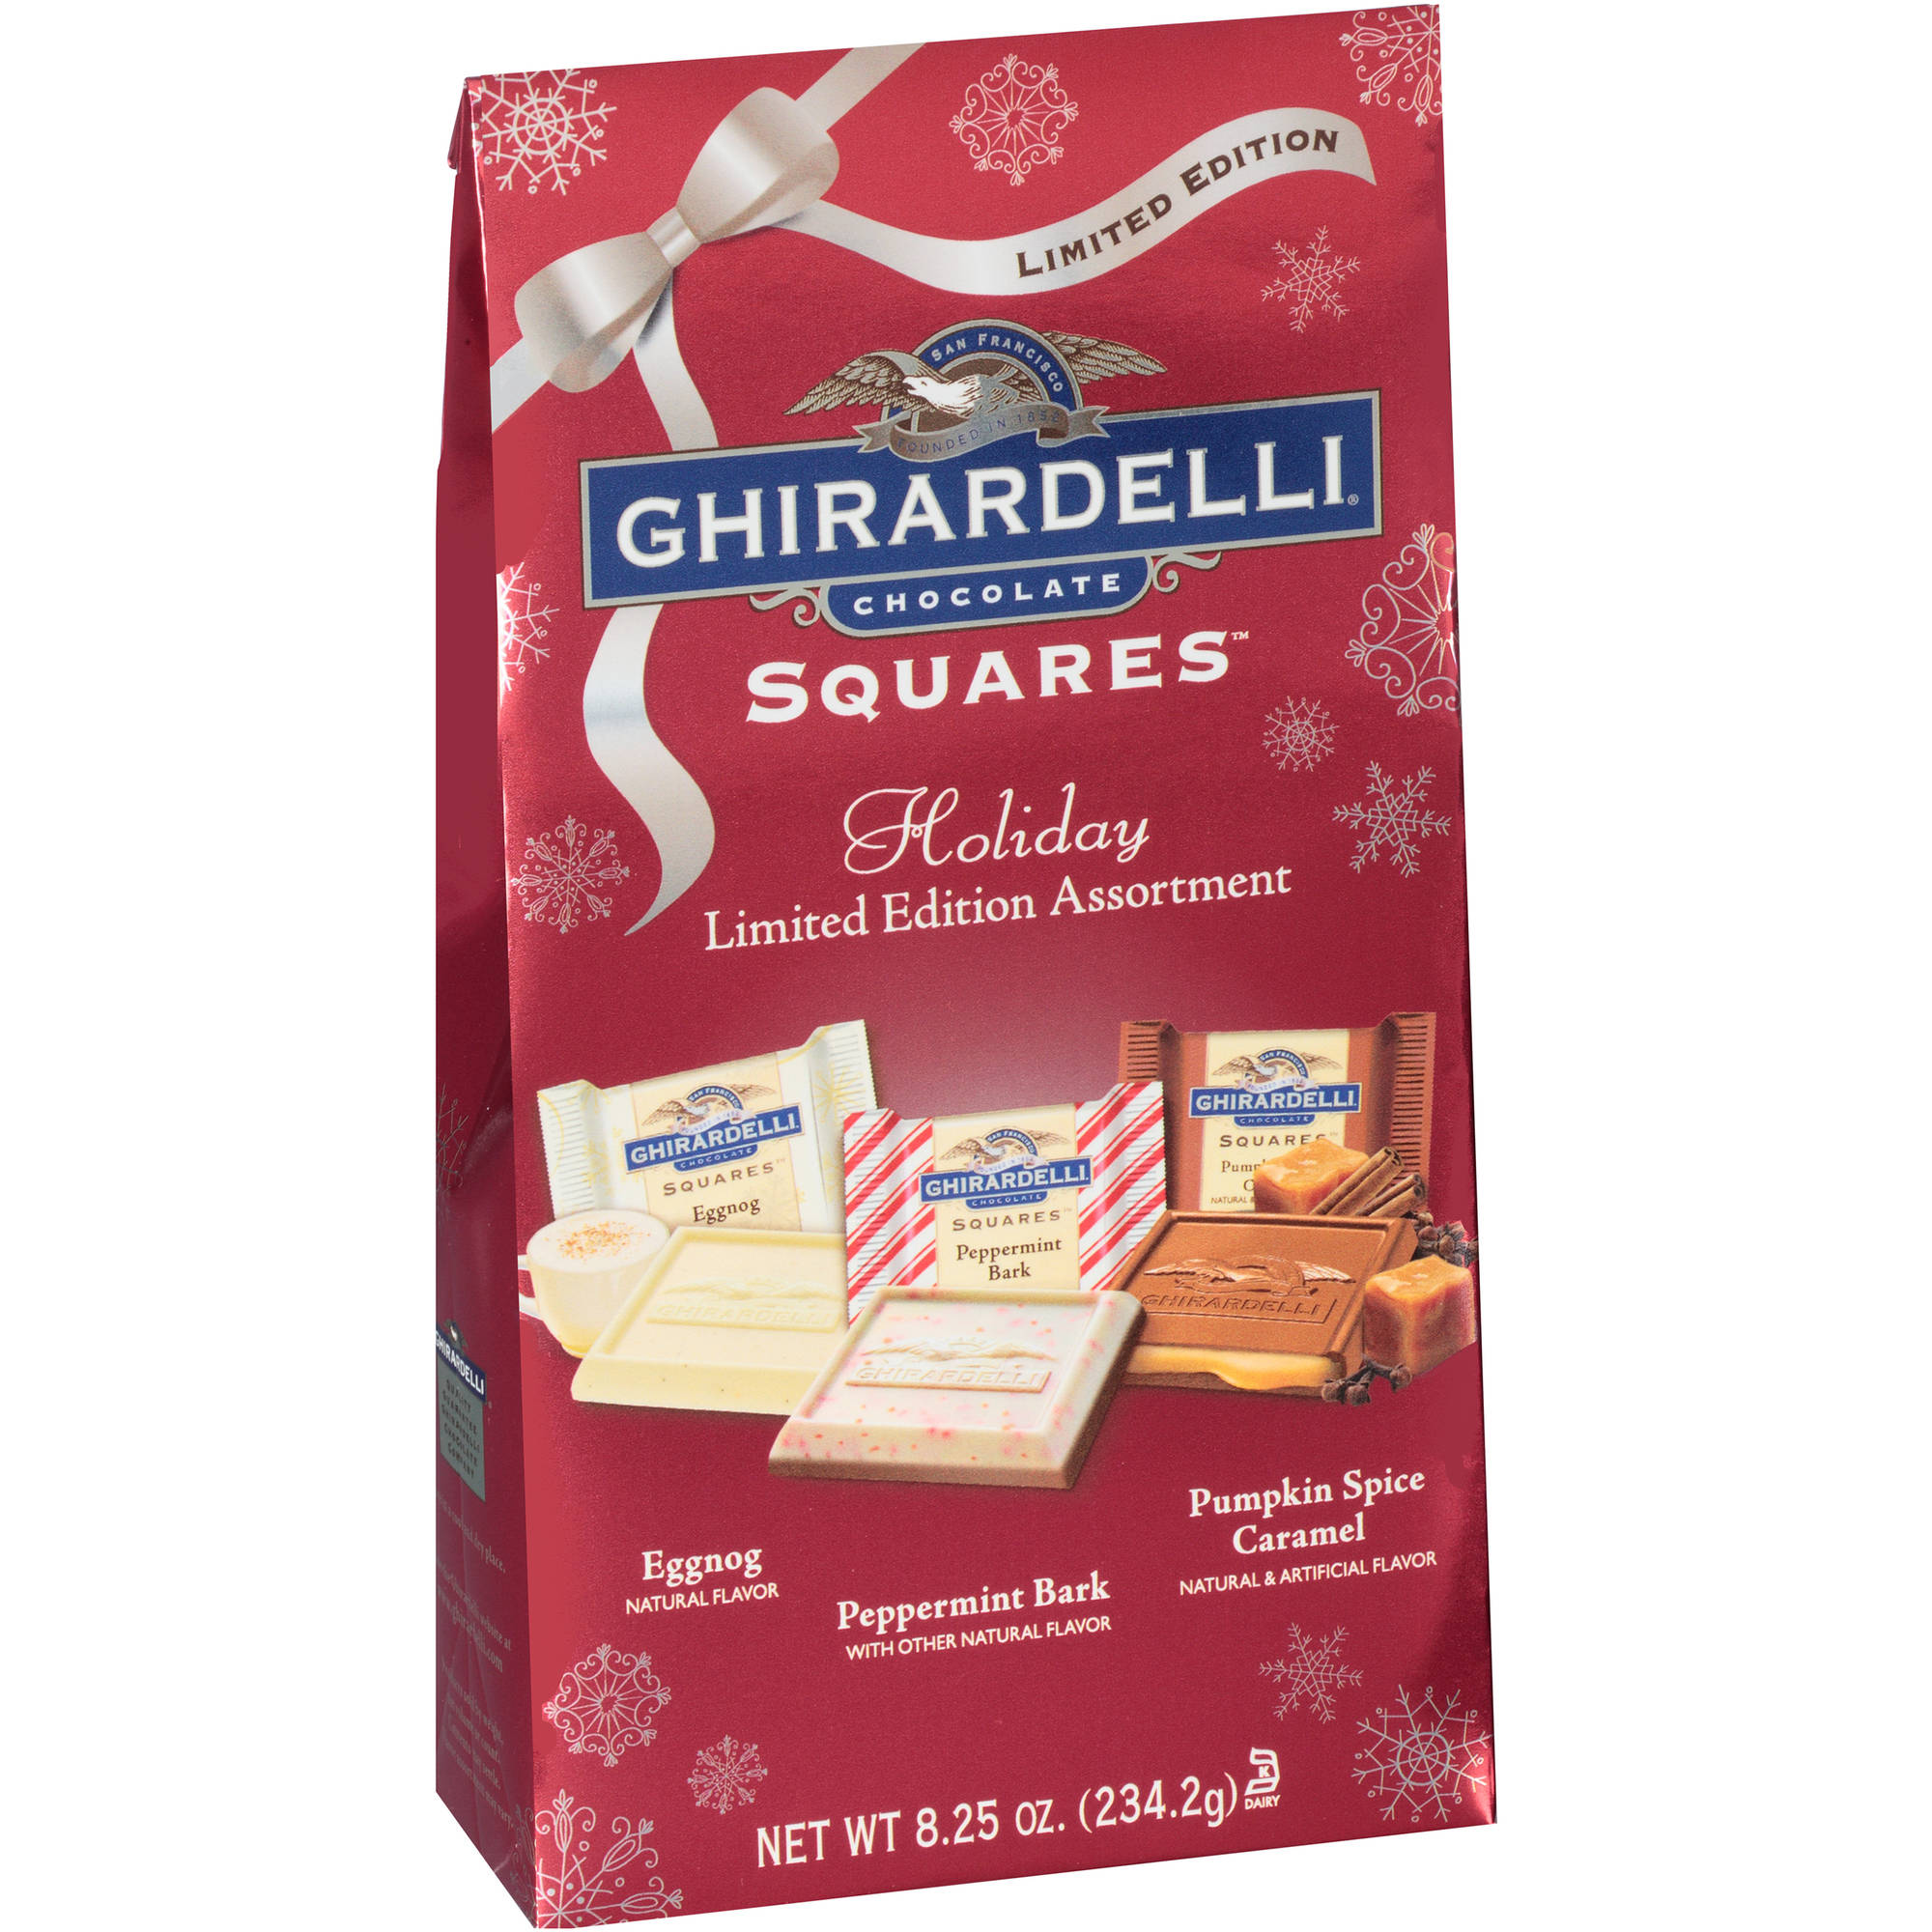 Ghirardelli Holiday Limited Edition Assortment Chocolate Squares Holiday Gift, 8.25 oz